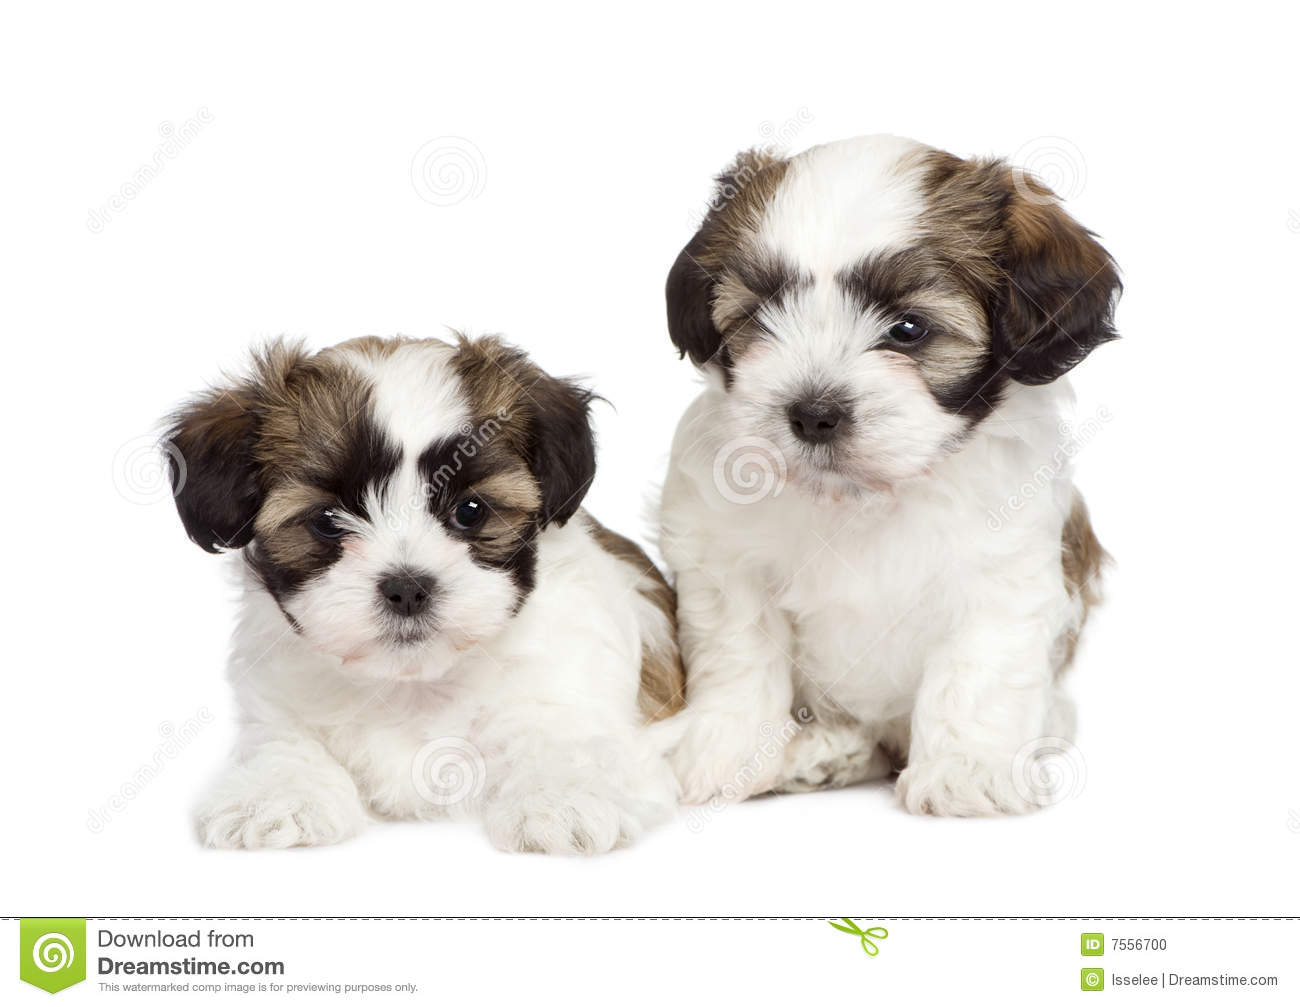 Puppy mixed-Breed Dog Shih Tzu and maltese